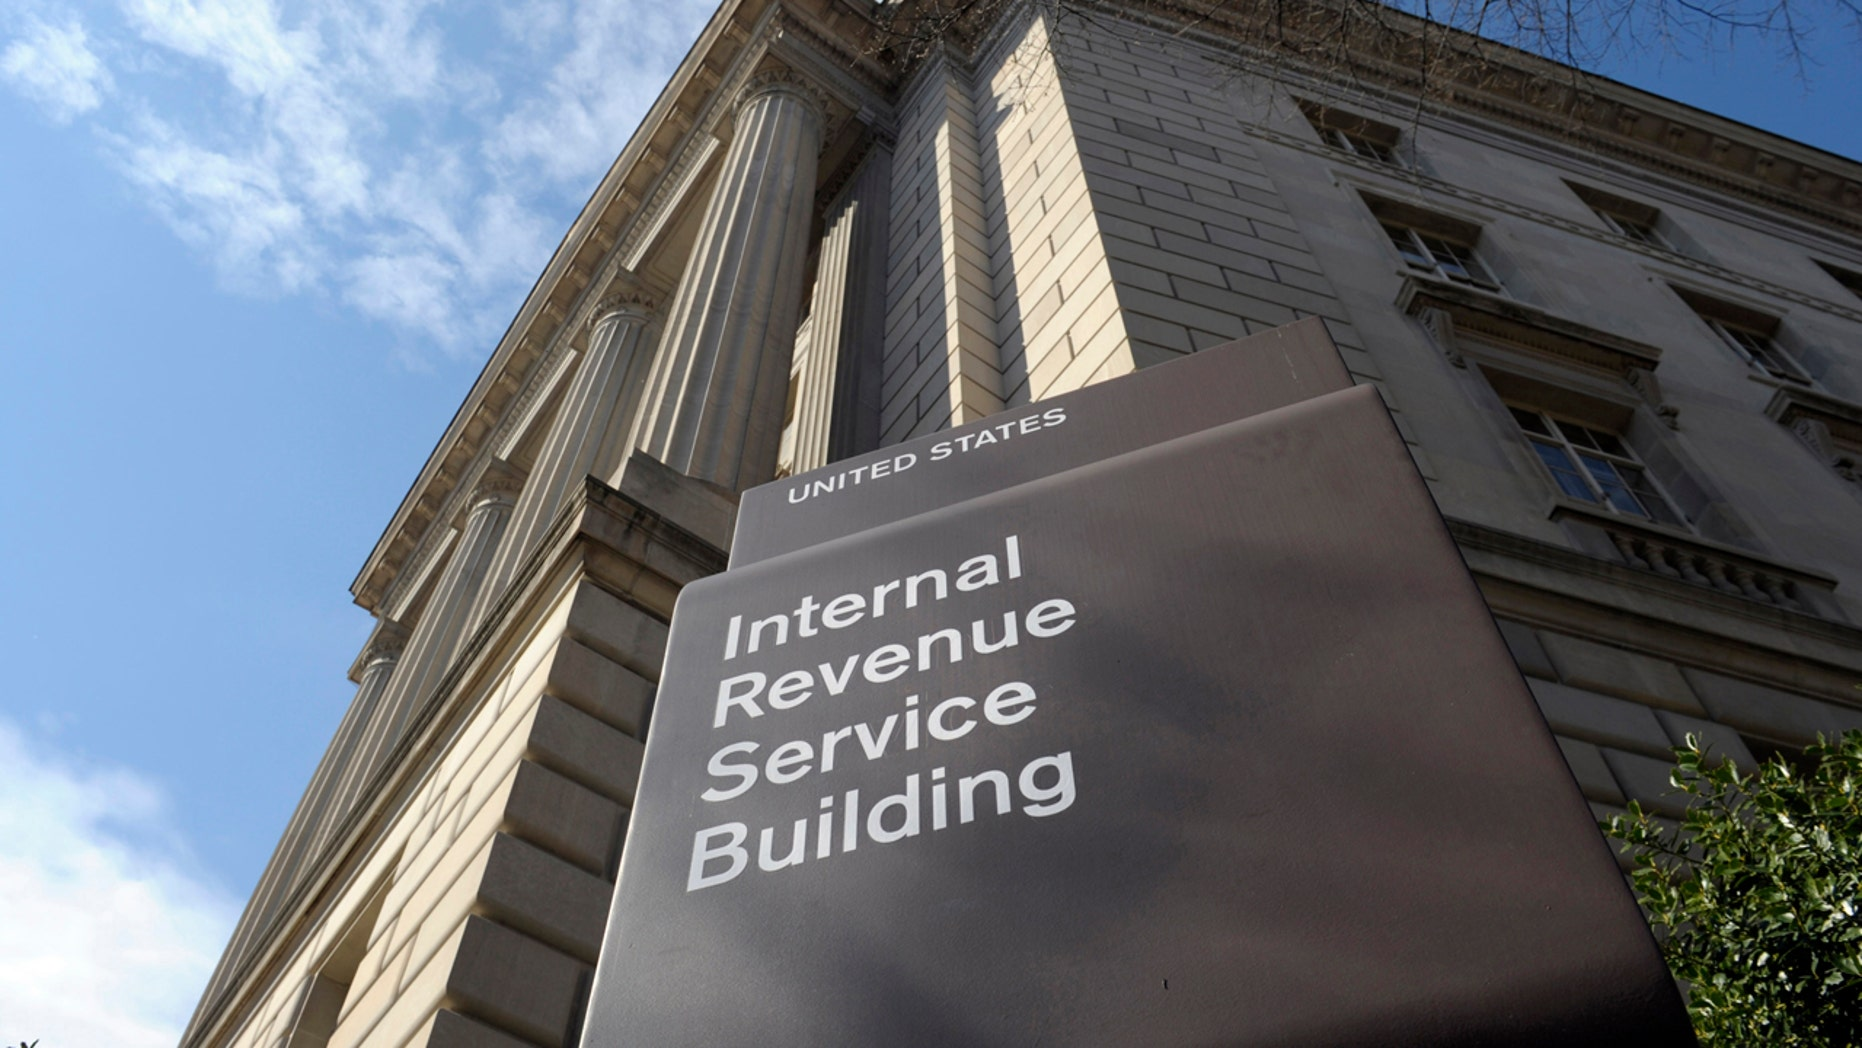 FILE - In this photo March 22, 2013 file photo, the exterior of the Internal Revenue Service (IRS) building in Washington.